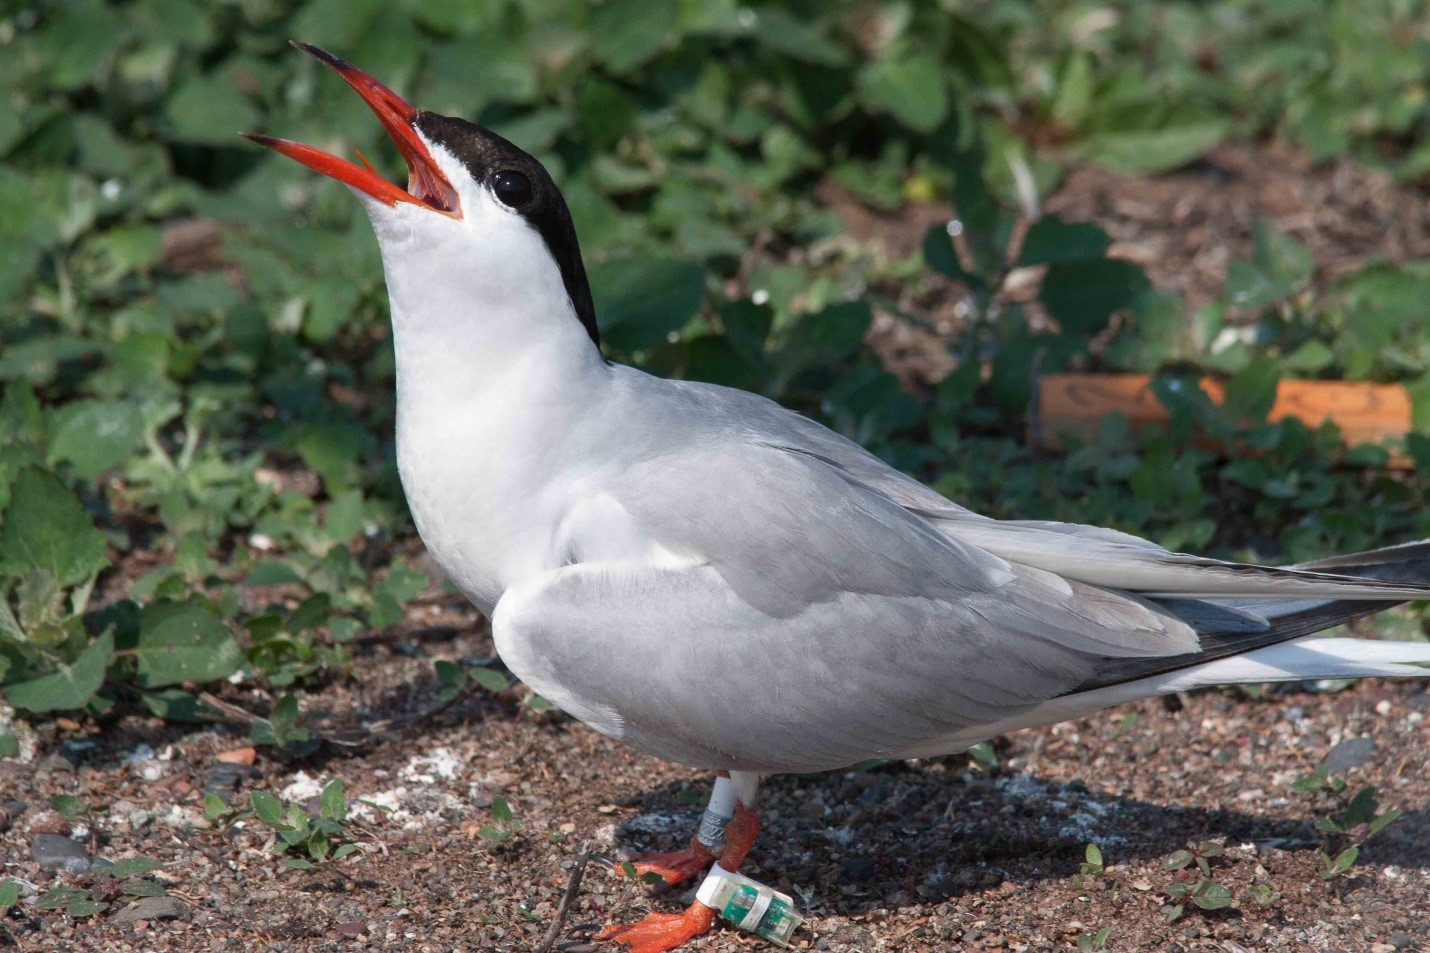 The Common Tern is one of the most predominant species of tern in North America, but the birds' breeding colonies appear to be suffering despite conservation efforts.